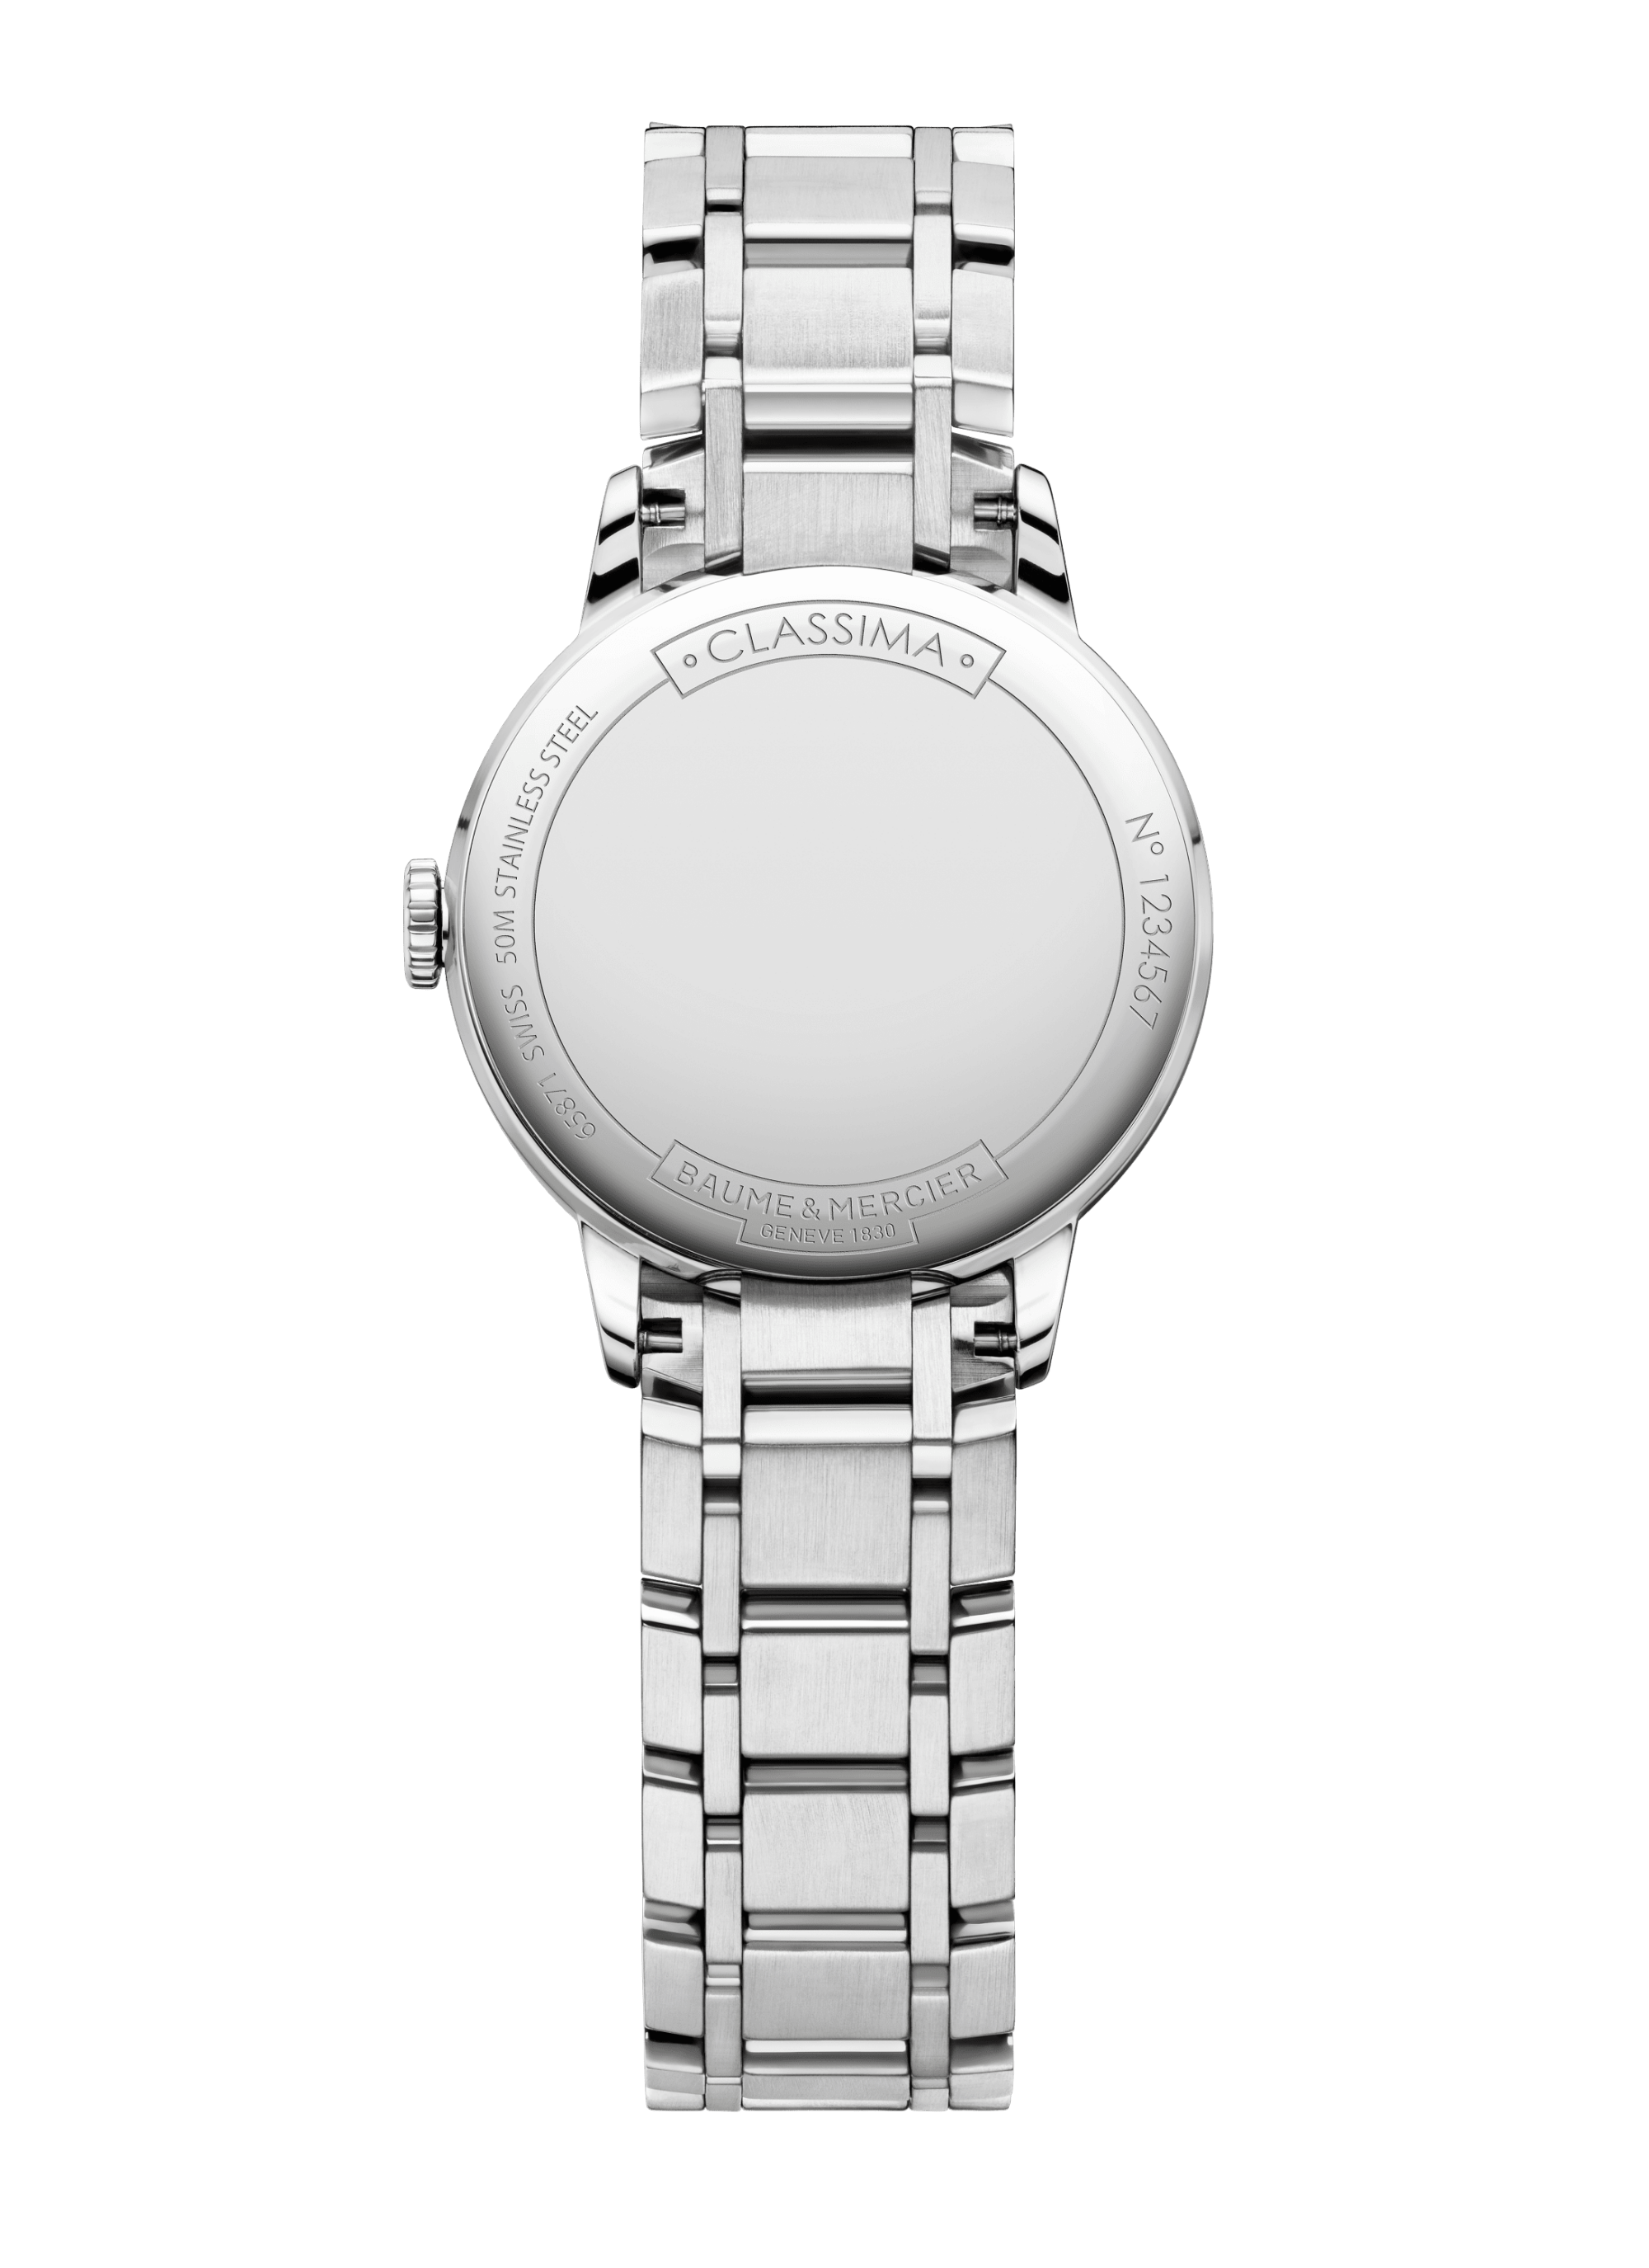 Classima 10489 Watch for ladies | Check Prices on Baume & Mercier Back -